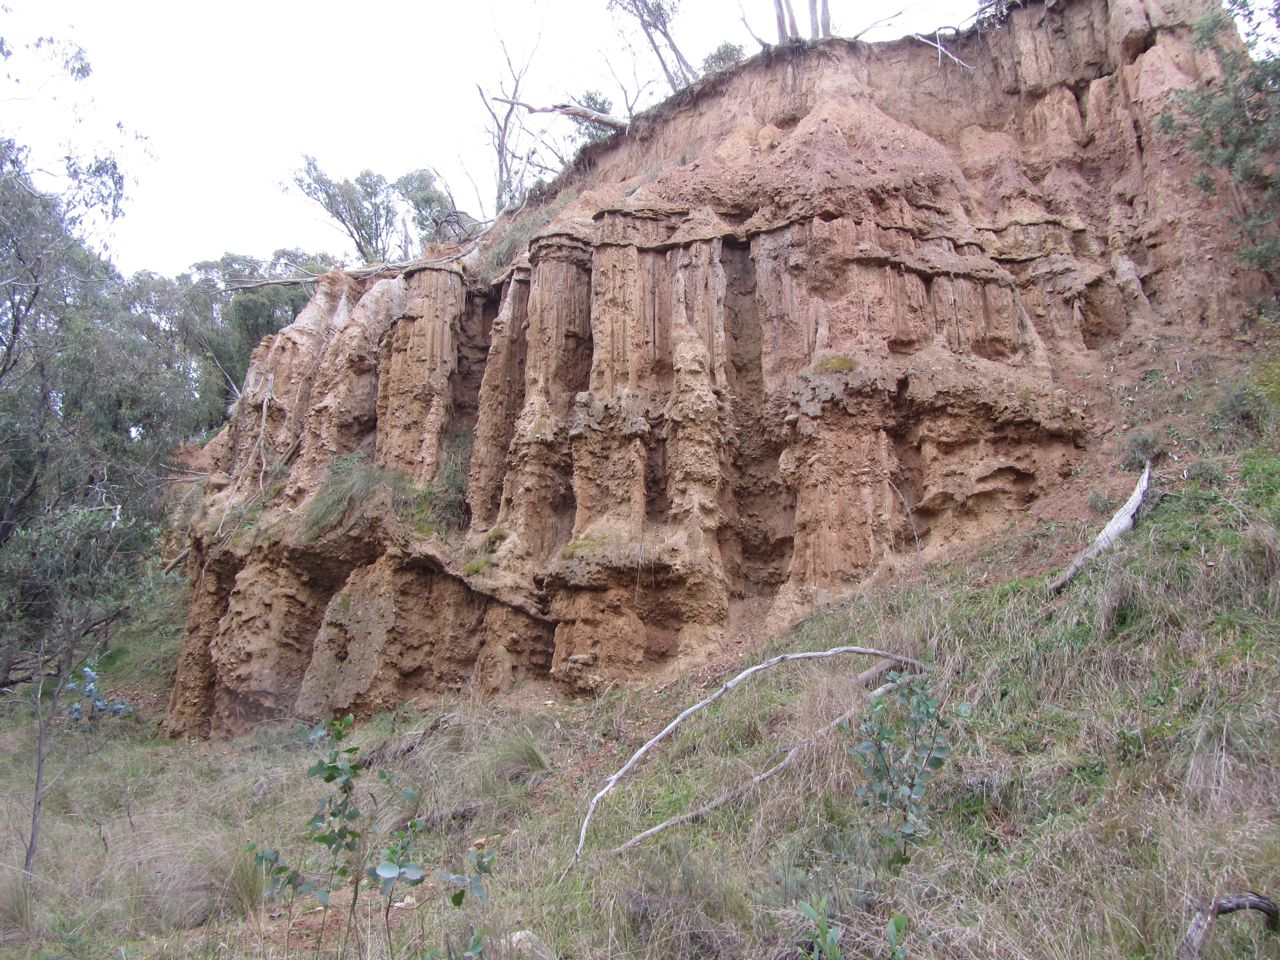 Unnatural land forms left by alluvial mining in another area.